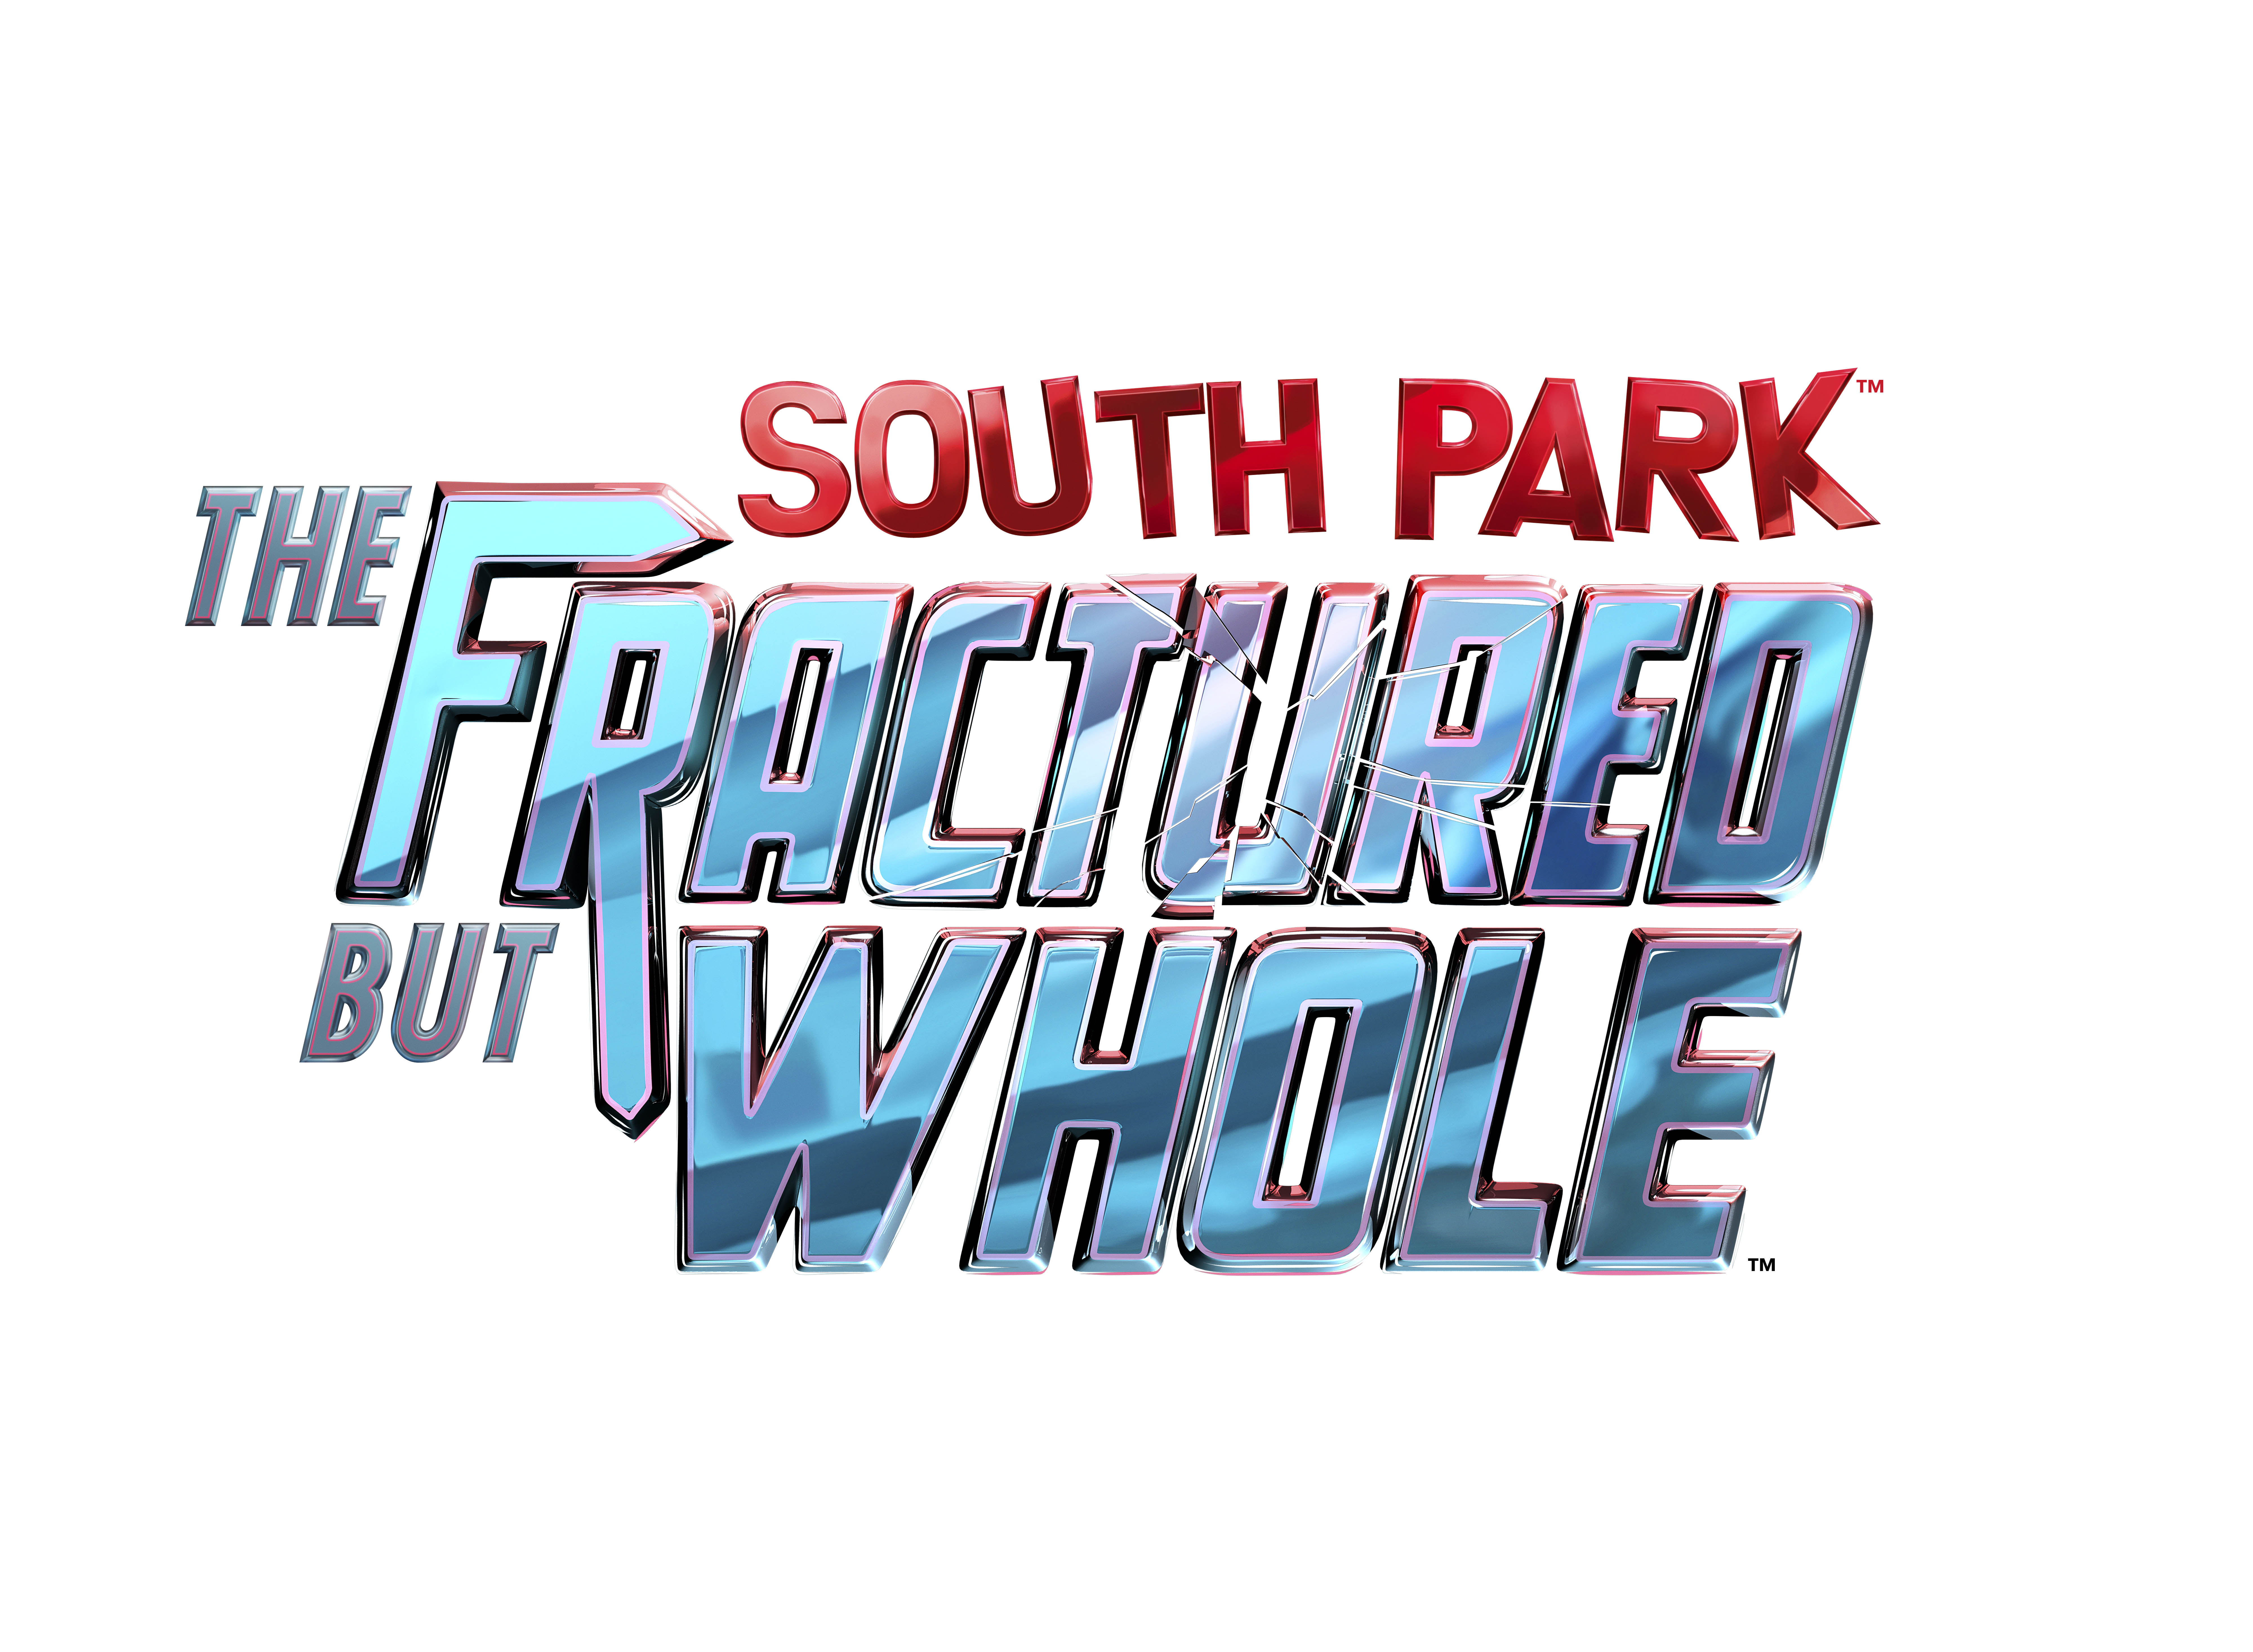 Ubisoft and South Park Digital Studios to Release SOUTH PARK: THE FRACTURED BUT WHOLE on Oct. 17